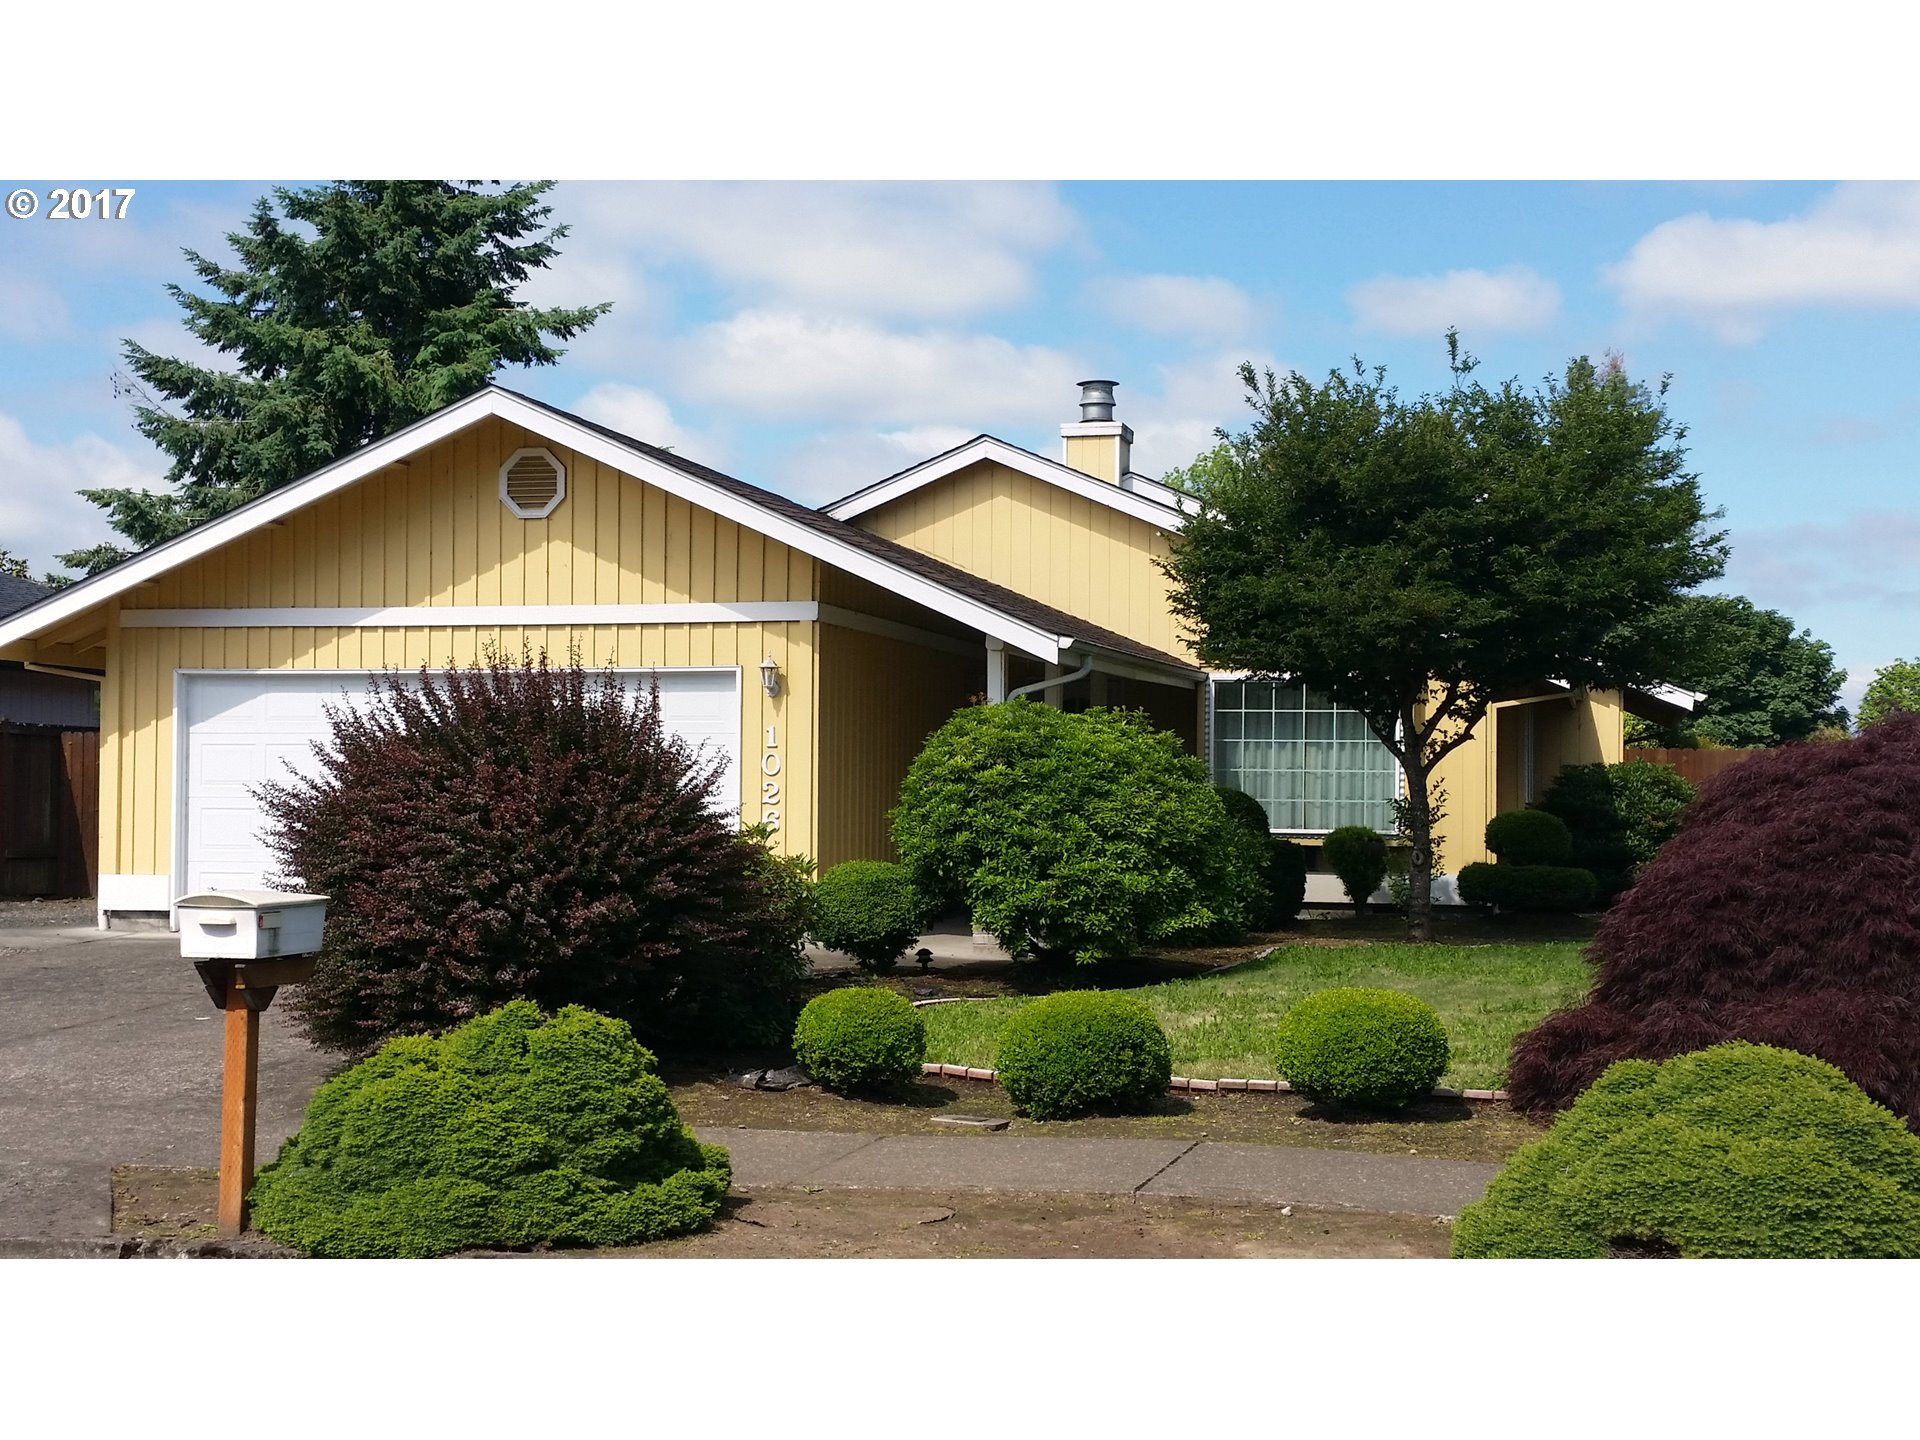 1026 S 44TH ST, Springfield, OR 97478